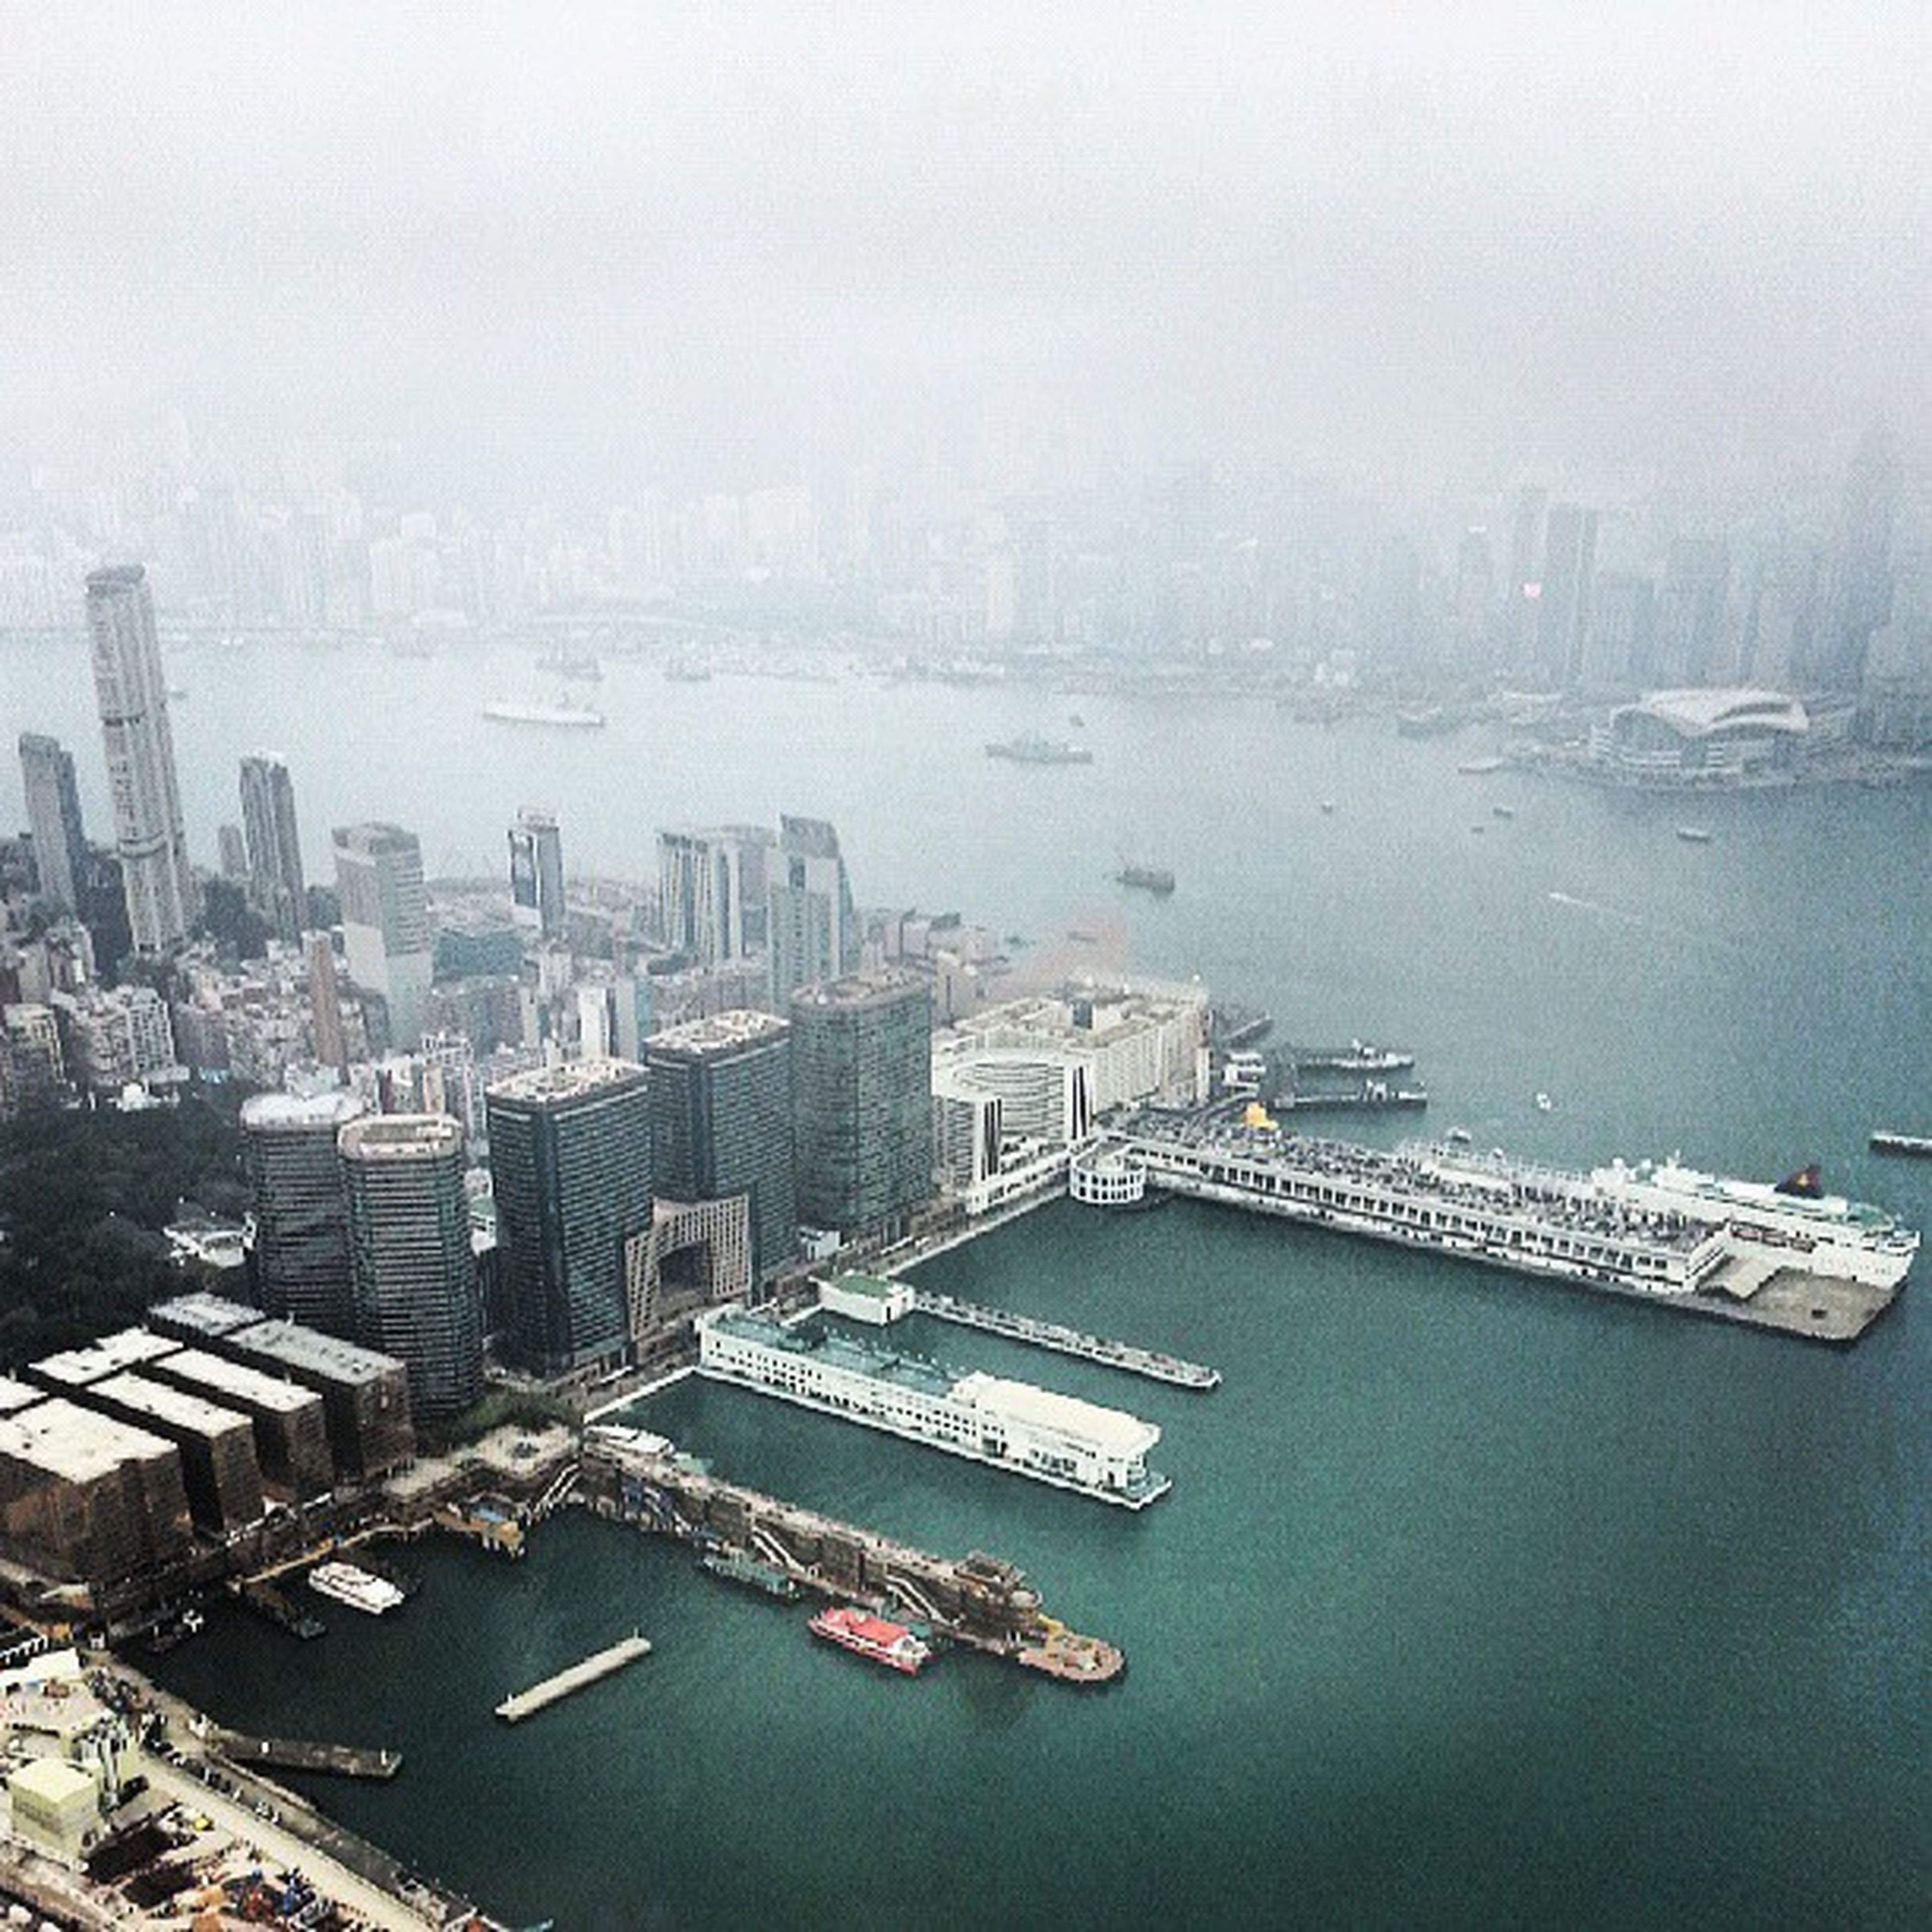 architecture, city, building exterior, water, built structure, cityscape, nautical vessel, transportation, high angle view, river, waterfront, mode of transport, skyscraper, sea, boat, crowded, harbor, urban skyline, sky, office building